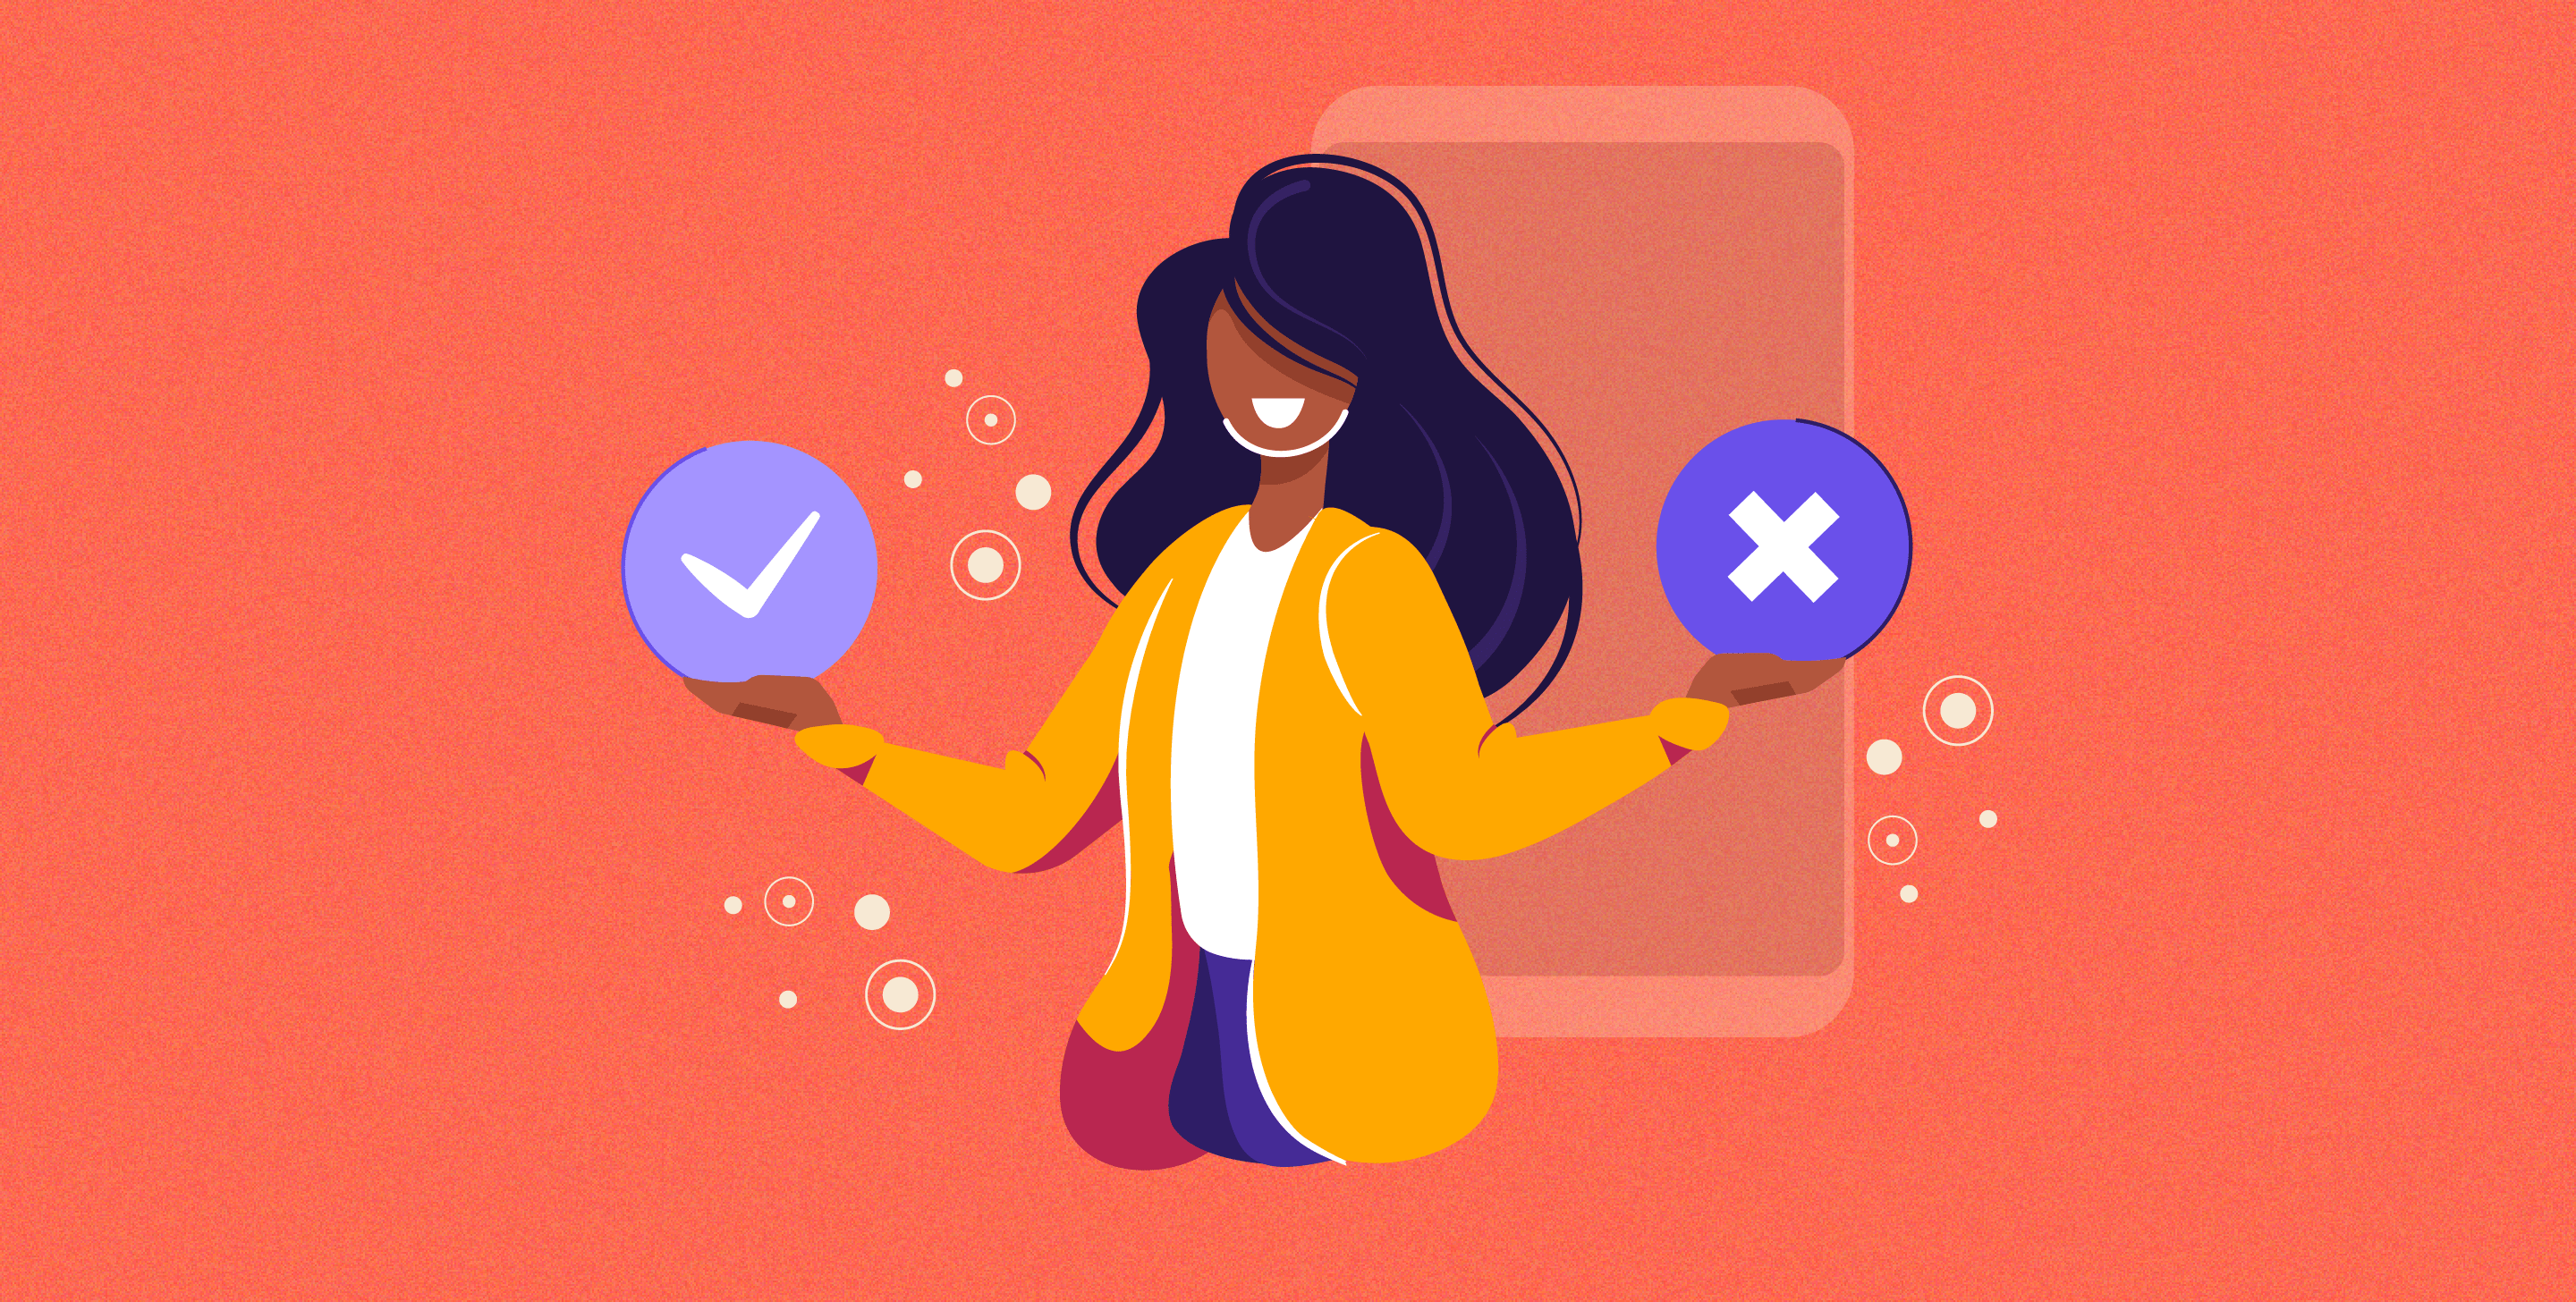 10 Best Poll Apps to Look for in 2020